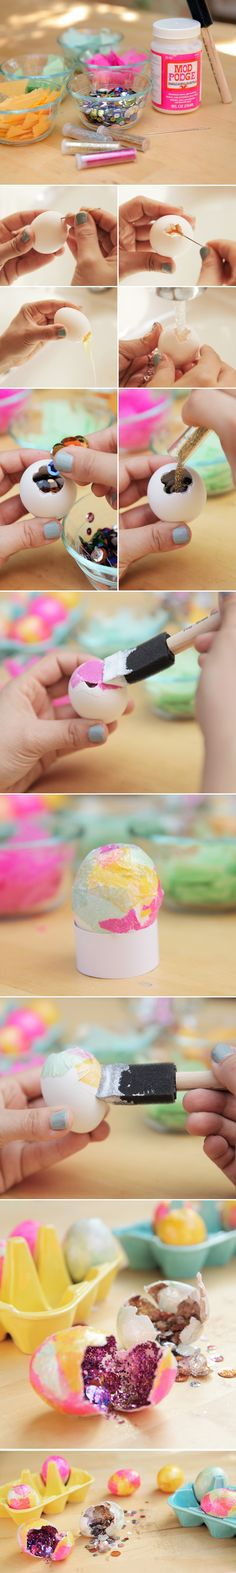 Cascarones: Mexican glitter-filled eggs that will leave you smiling. #DIY #glitter #confetti #easter